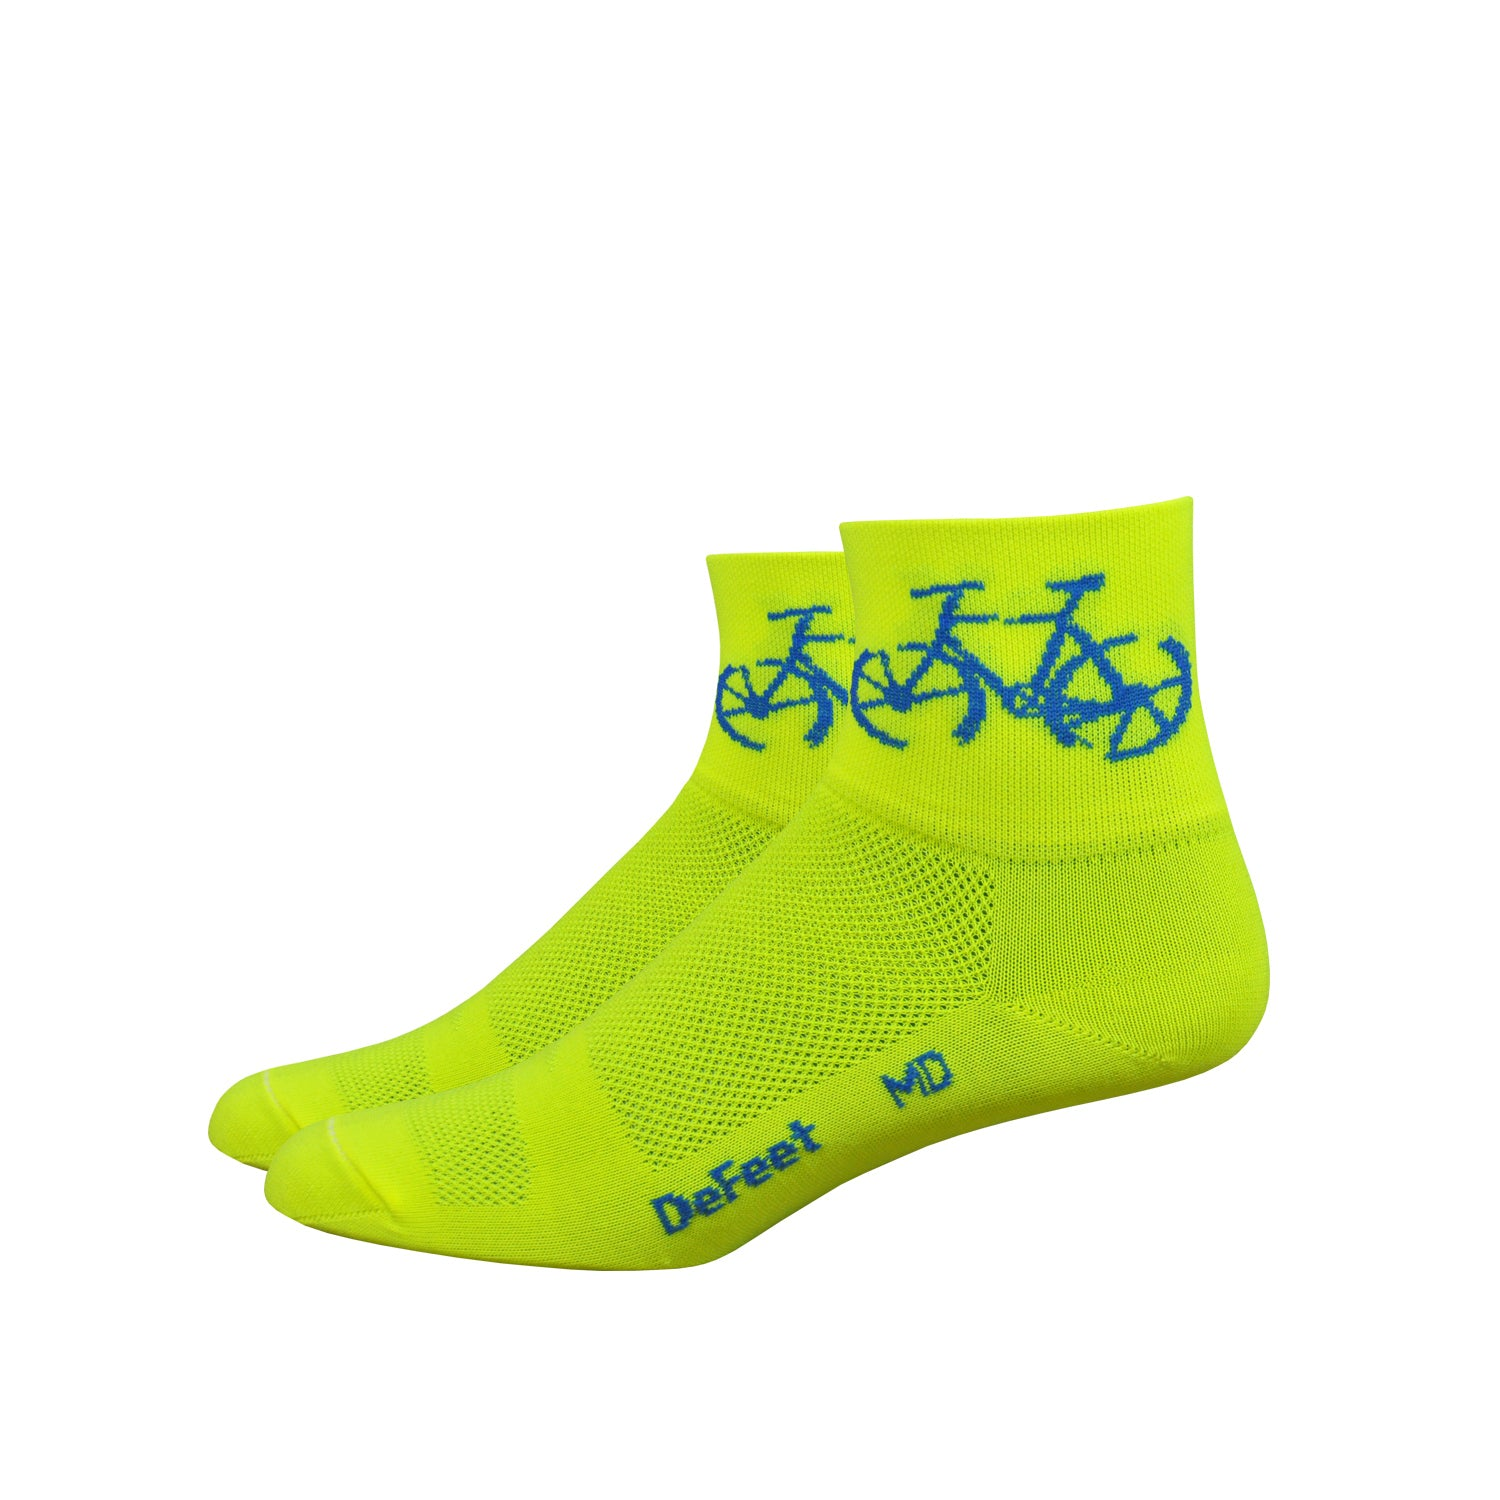 "Aireator 3"" Townee (Neon Yellow/Process Blue)"